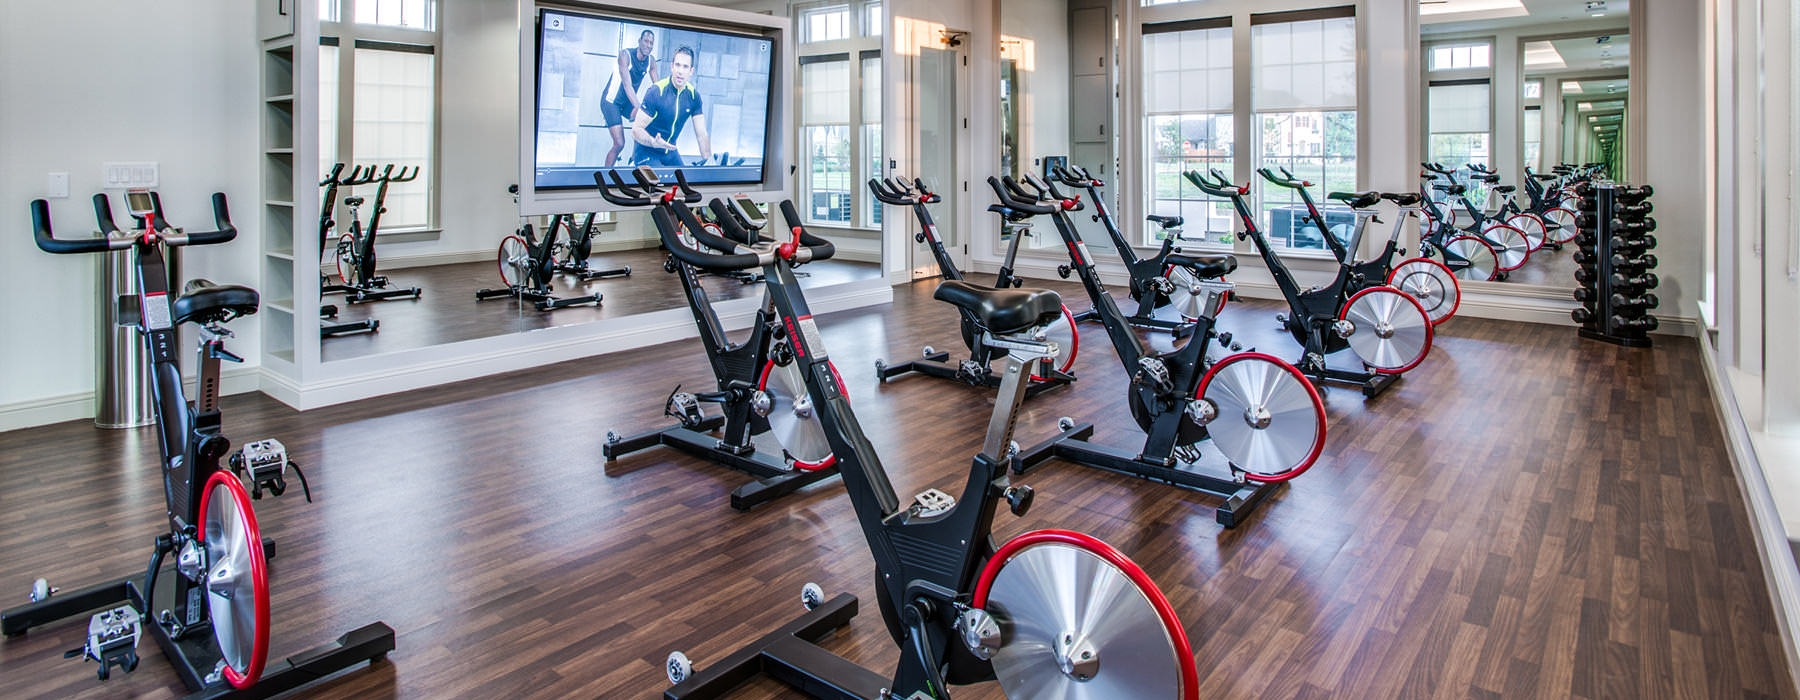 spin cycles in well lit fitness center